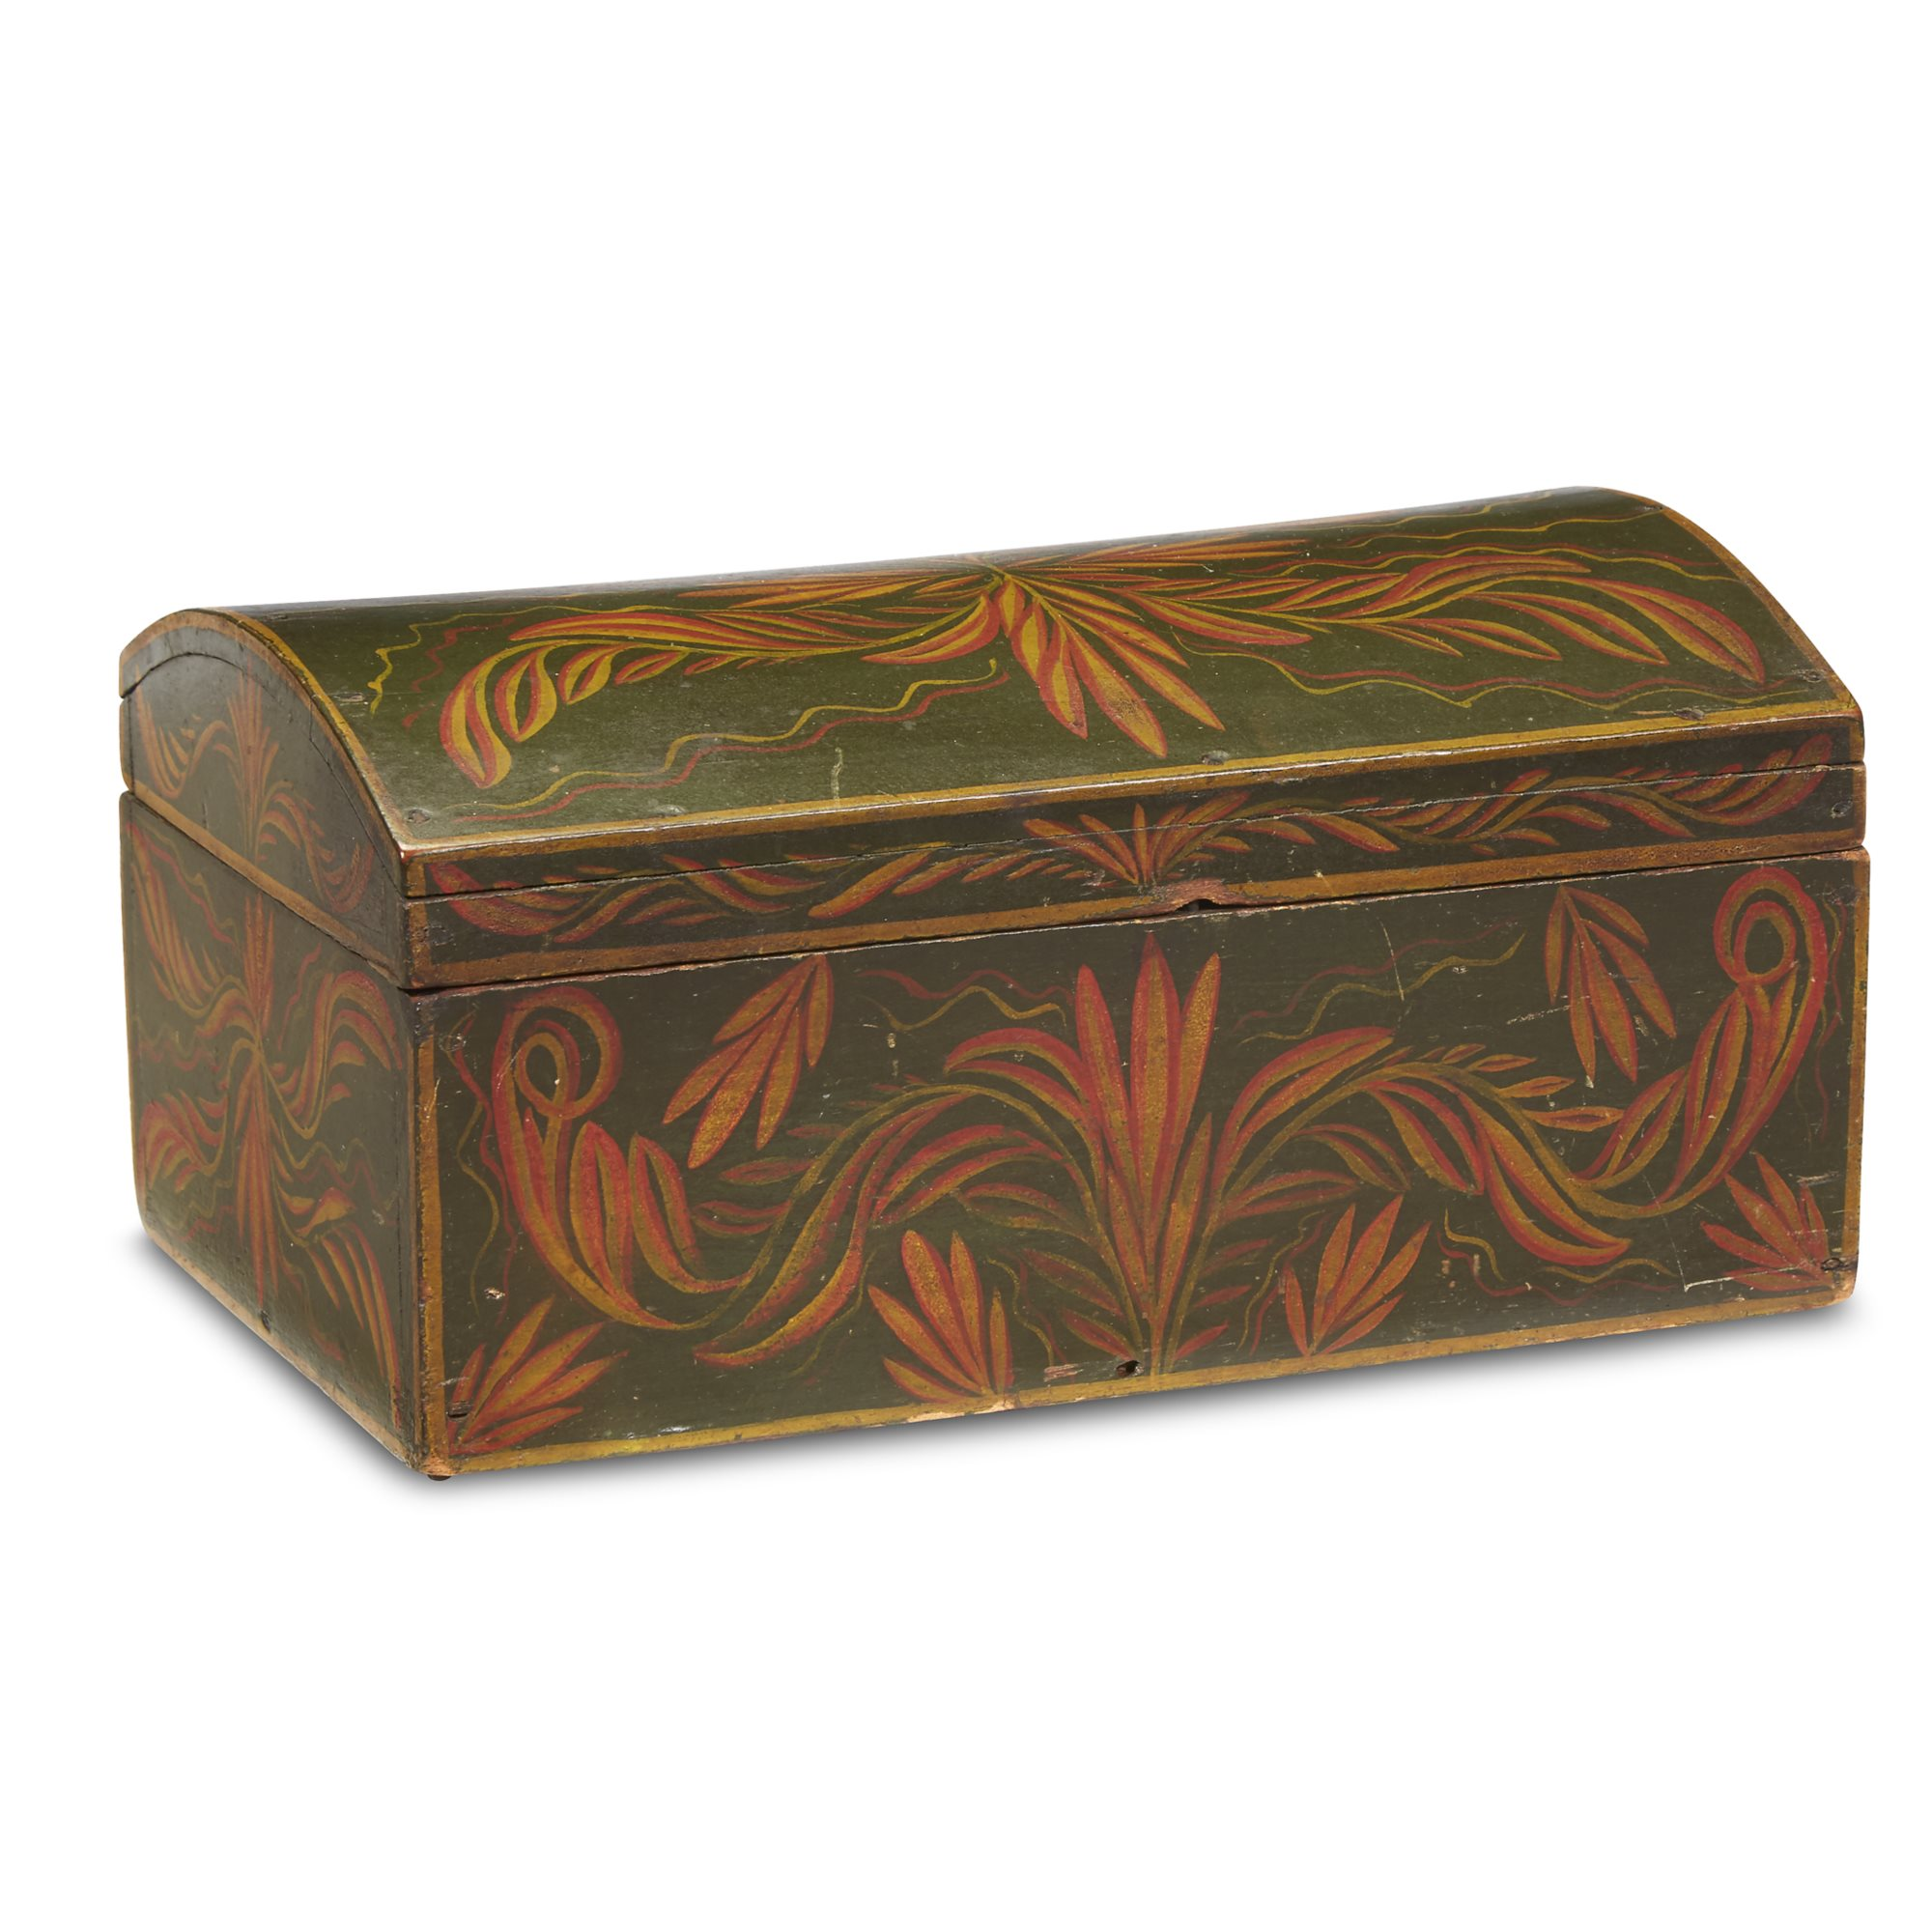 Lot 216: Painted and decorated tulip poplar dome-top box, first half 19th century, $3,000-5,000, to be offered at Freeman's on 04/30/19